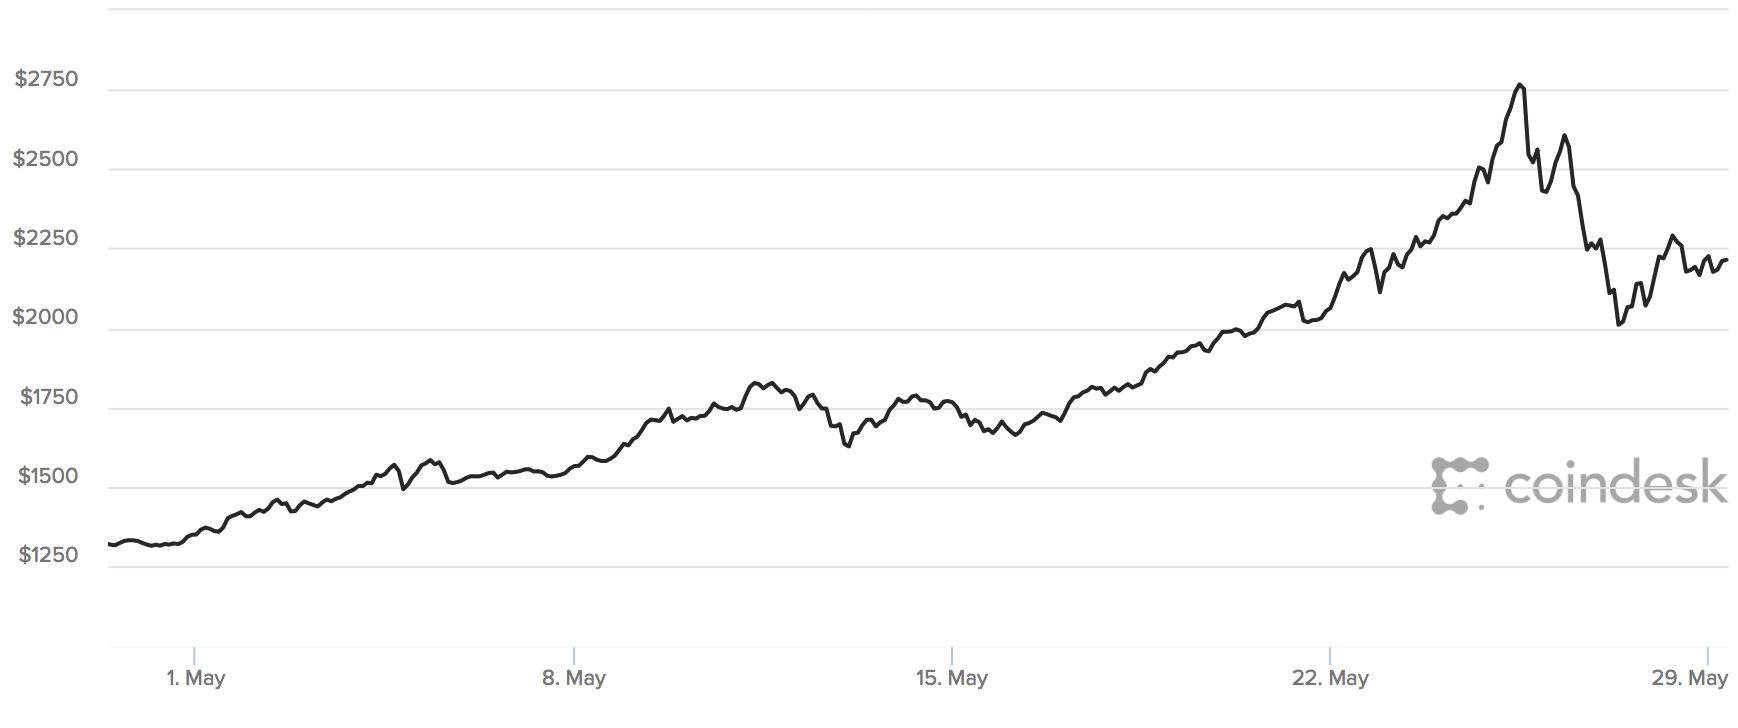 Bitcoin volatility and why it's good for gold Bitcoin volatility and why it's good for gold Bitcoin price graph